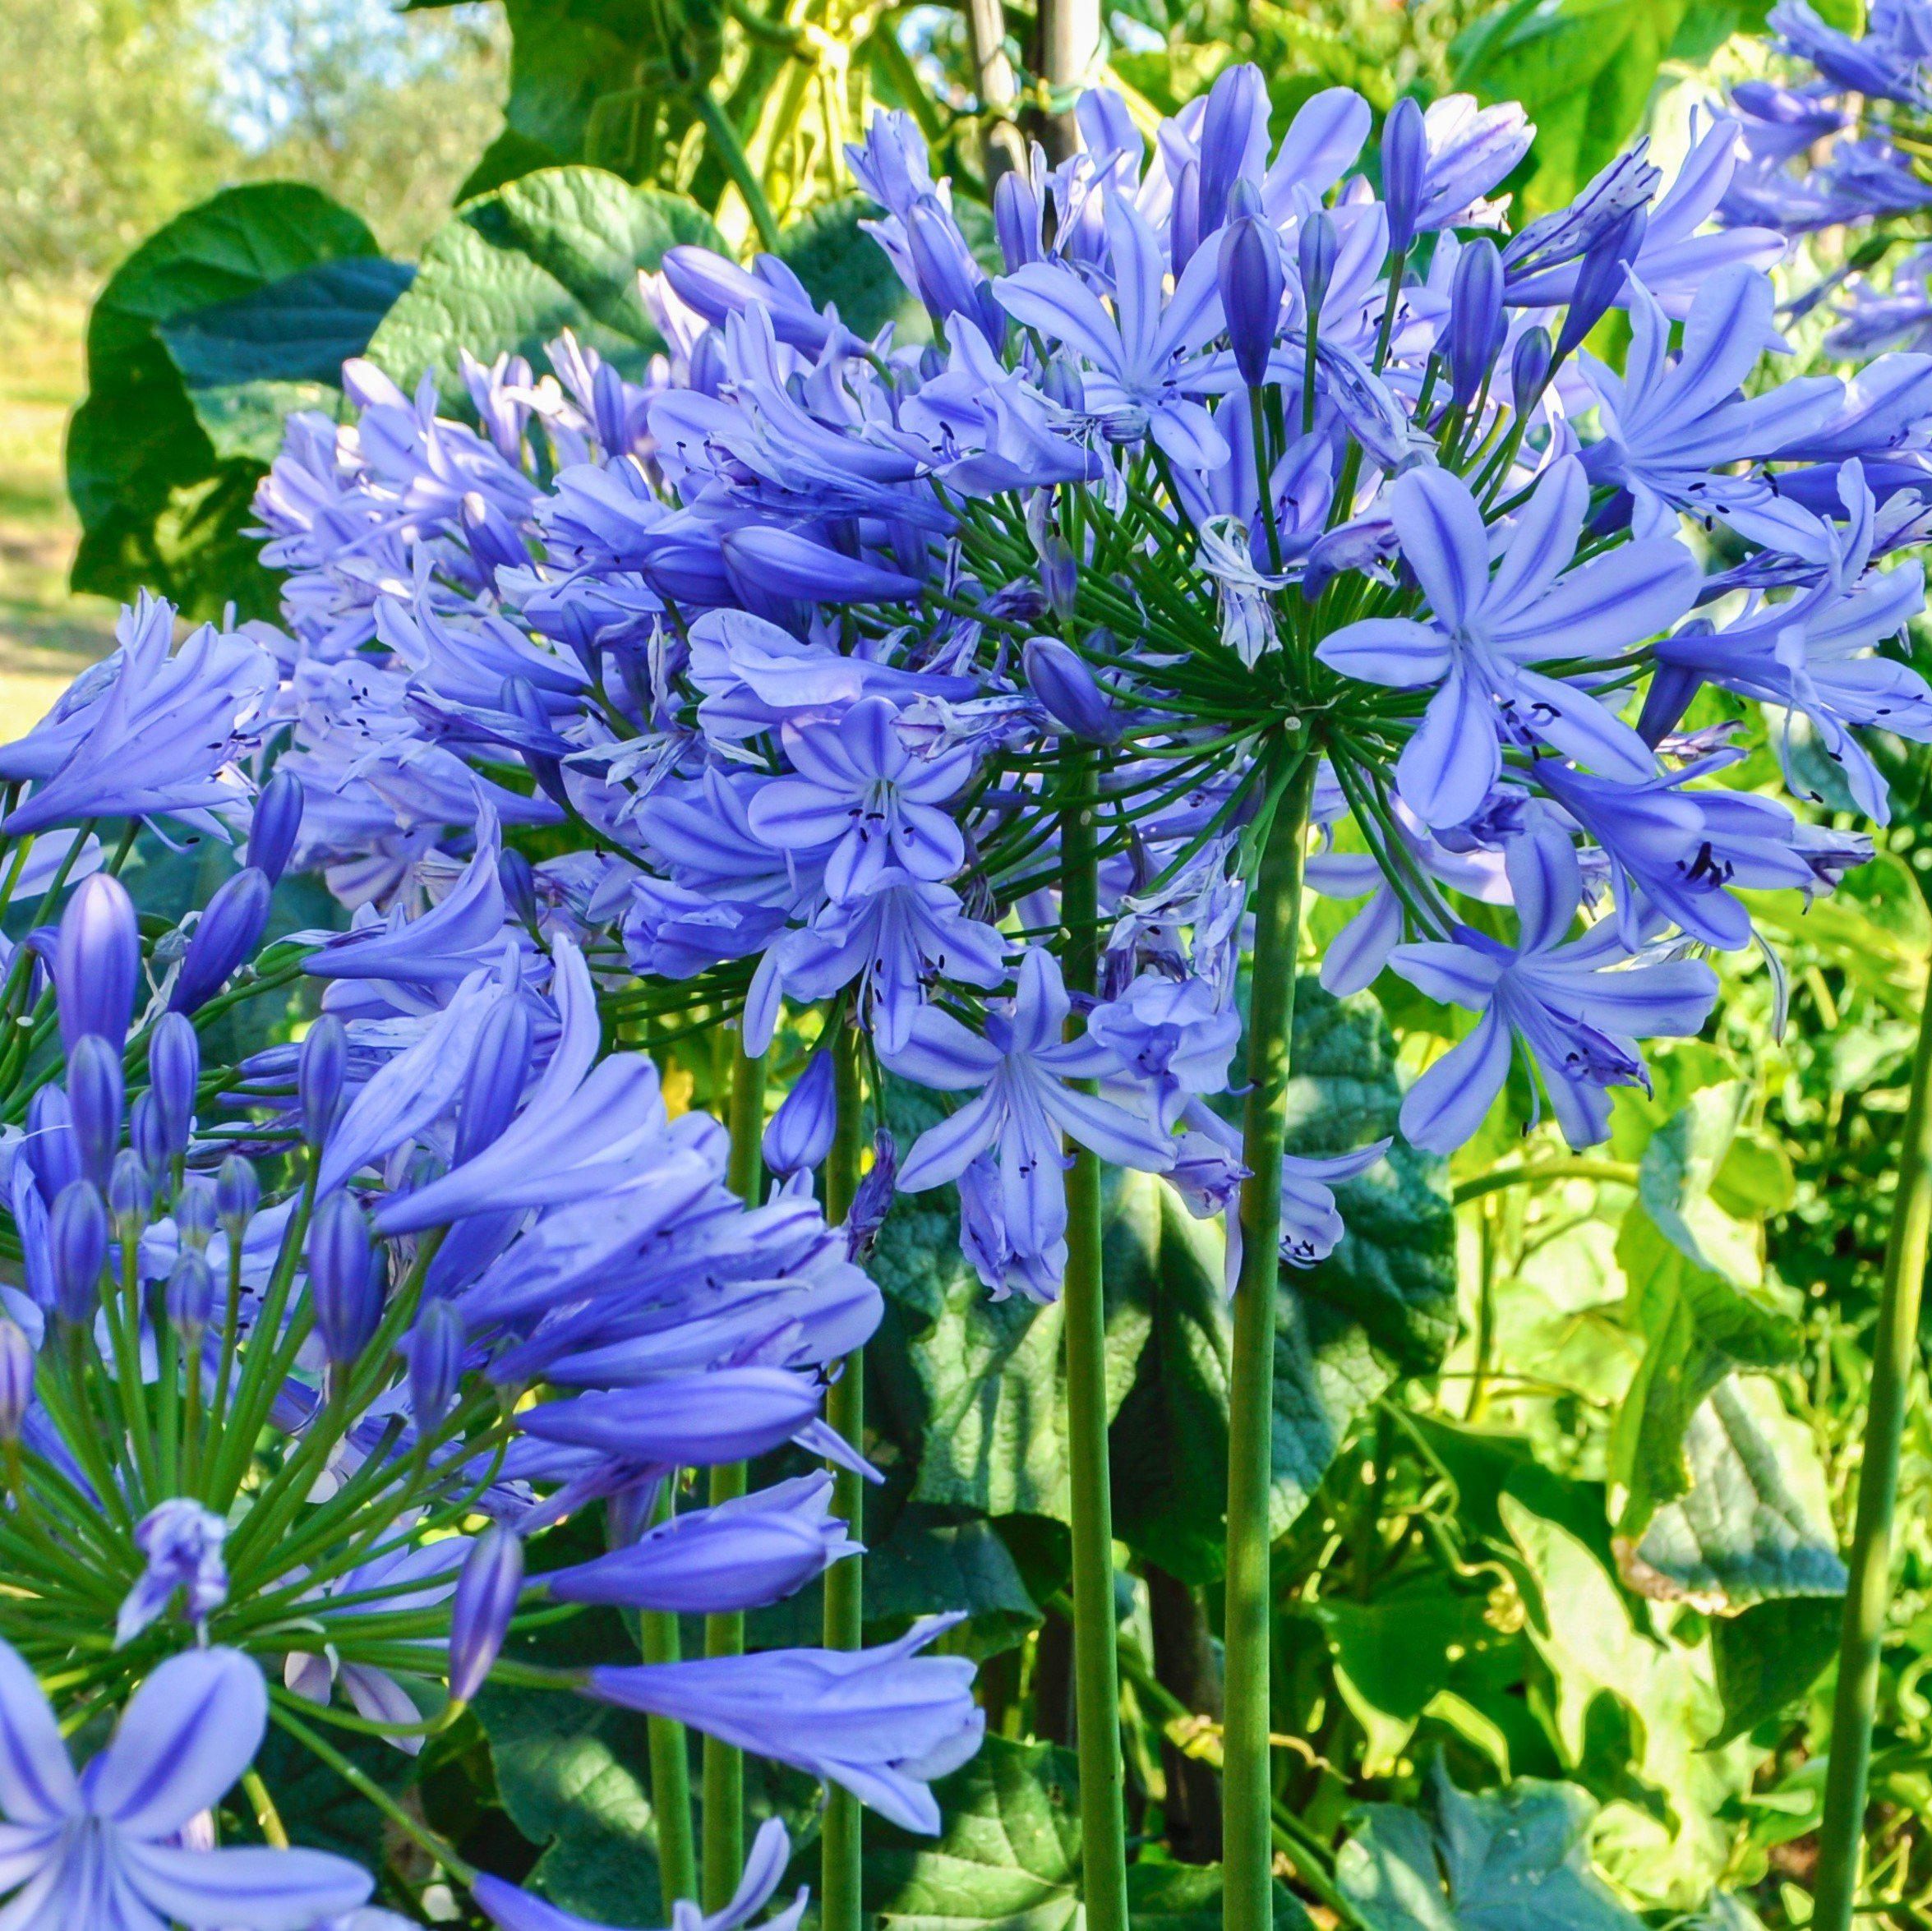 Agapanthus Blue Triumphator Blue Lily Of The Nile Bulb